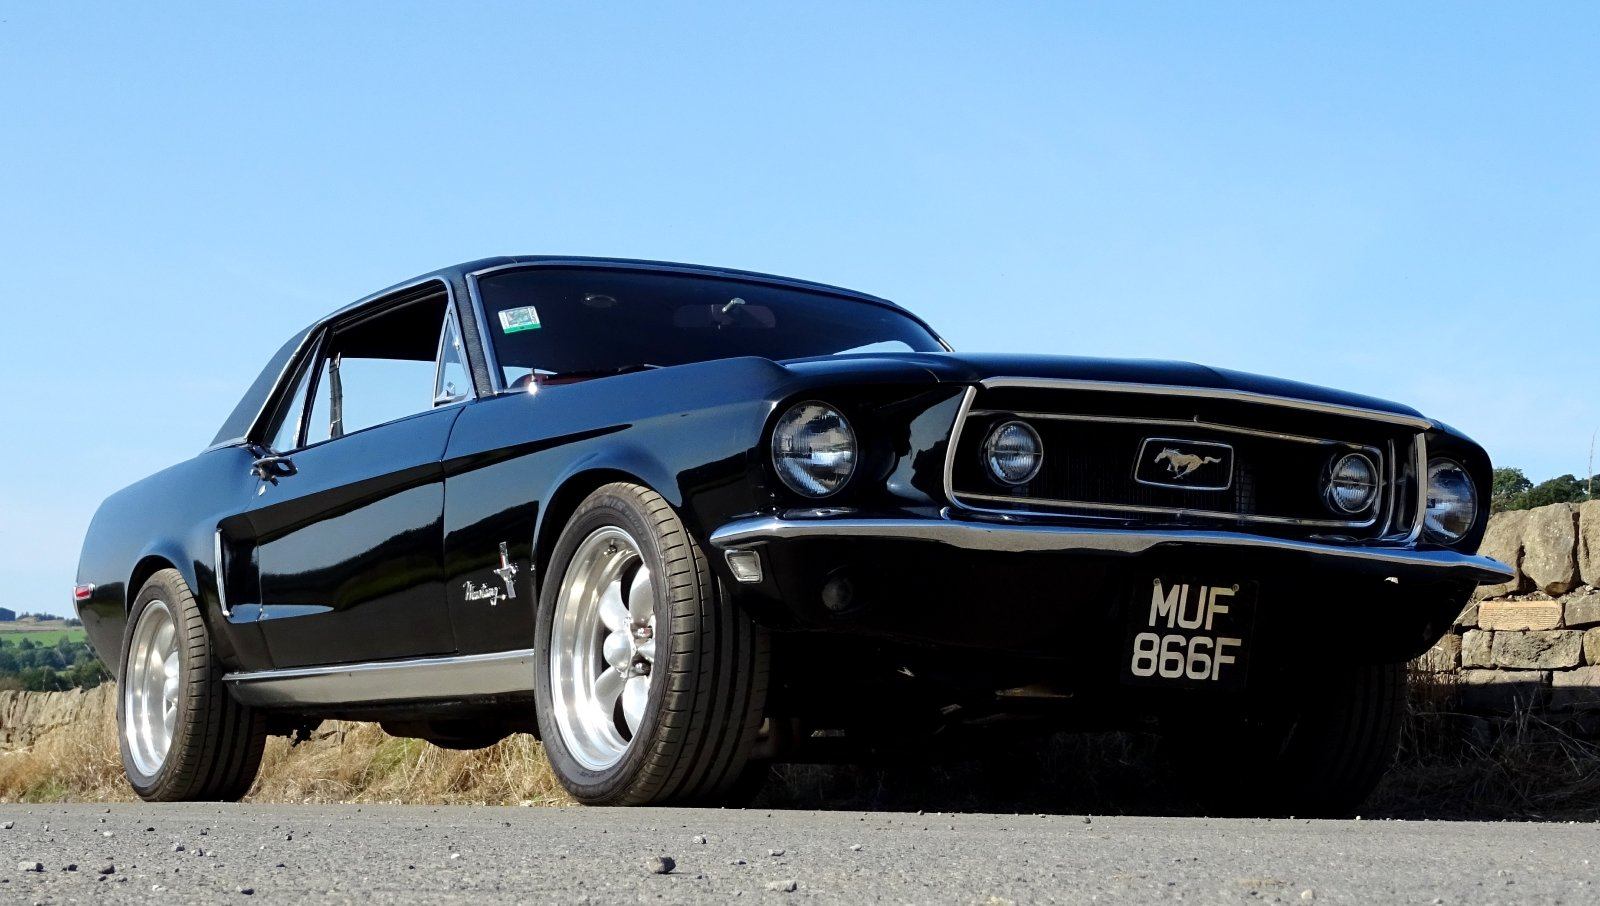 1968 AWESOME FORD MUSTANG AMERICAN V8 CLASSIC MUSCLE CAR For Sale (picture 12 of 12)